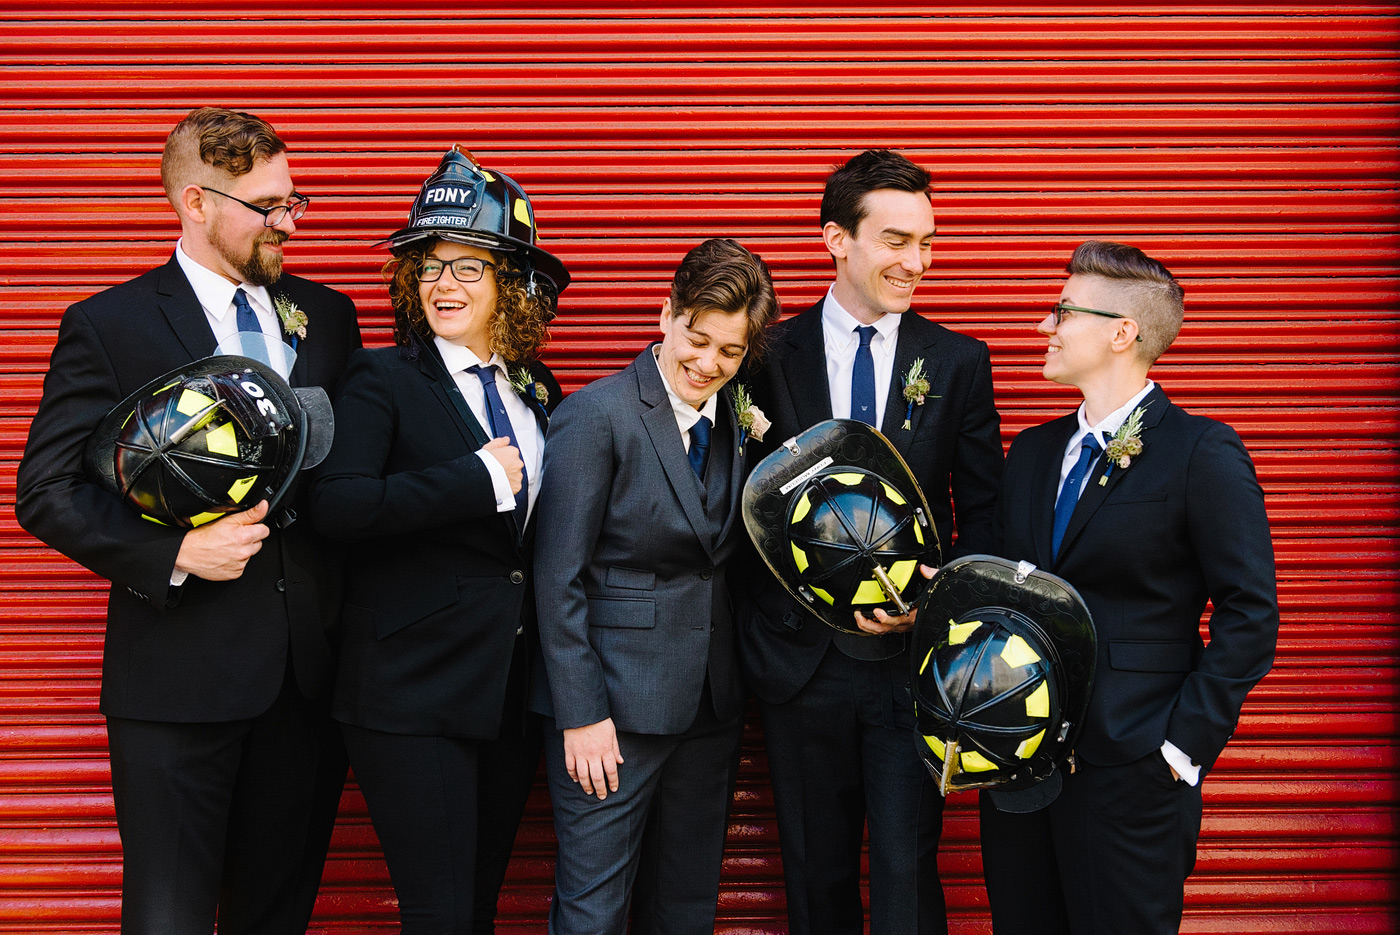 bride and bridesmaid wear firefighter helmets